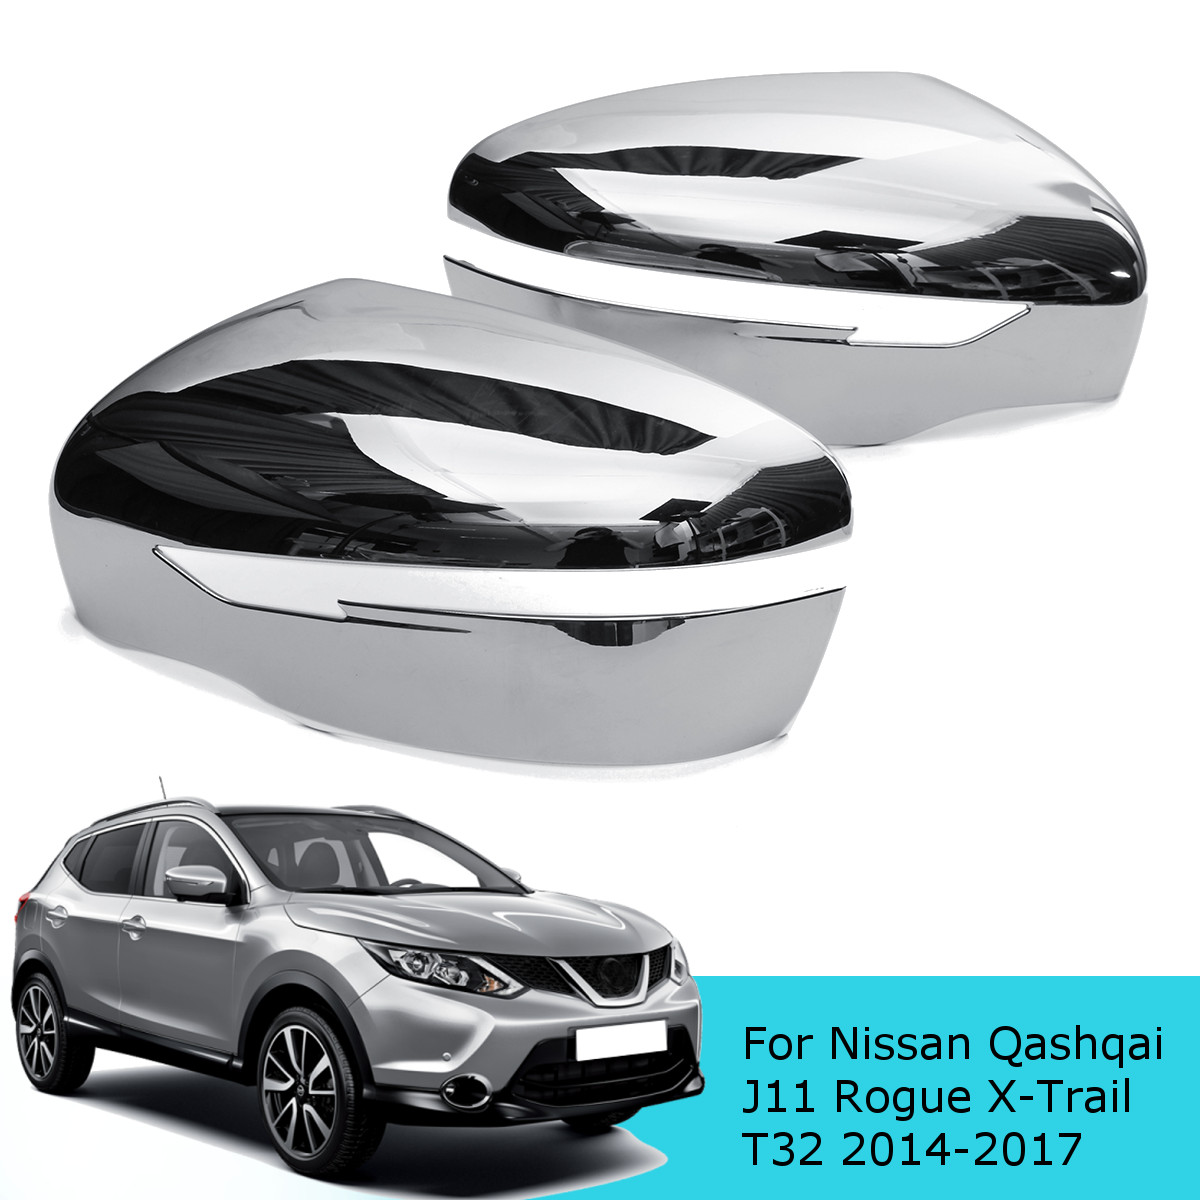 Door Wing Mirror Cover Black Left N//S For Nissan Qashqai 2007-2013 Brand New